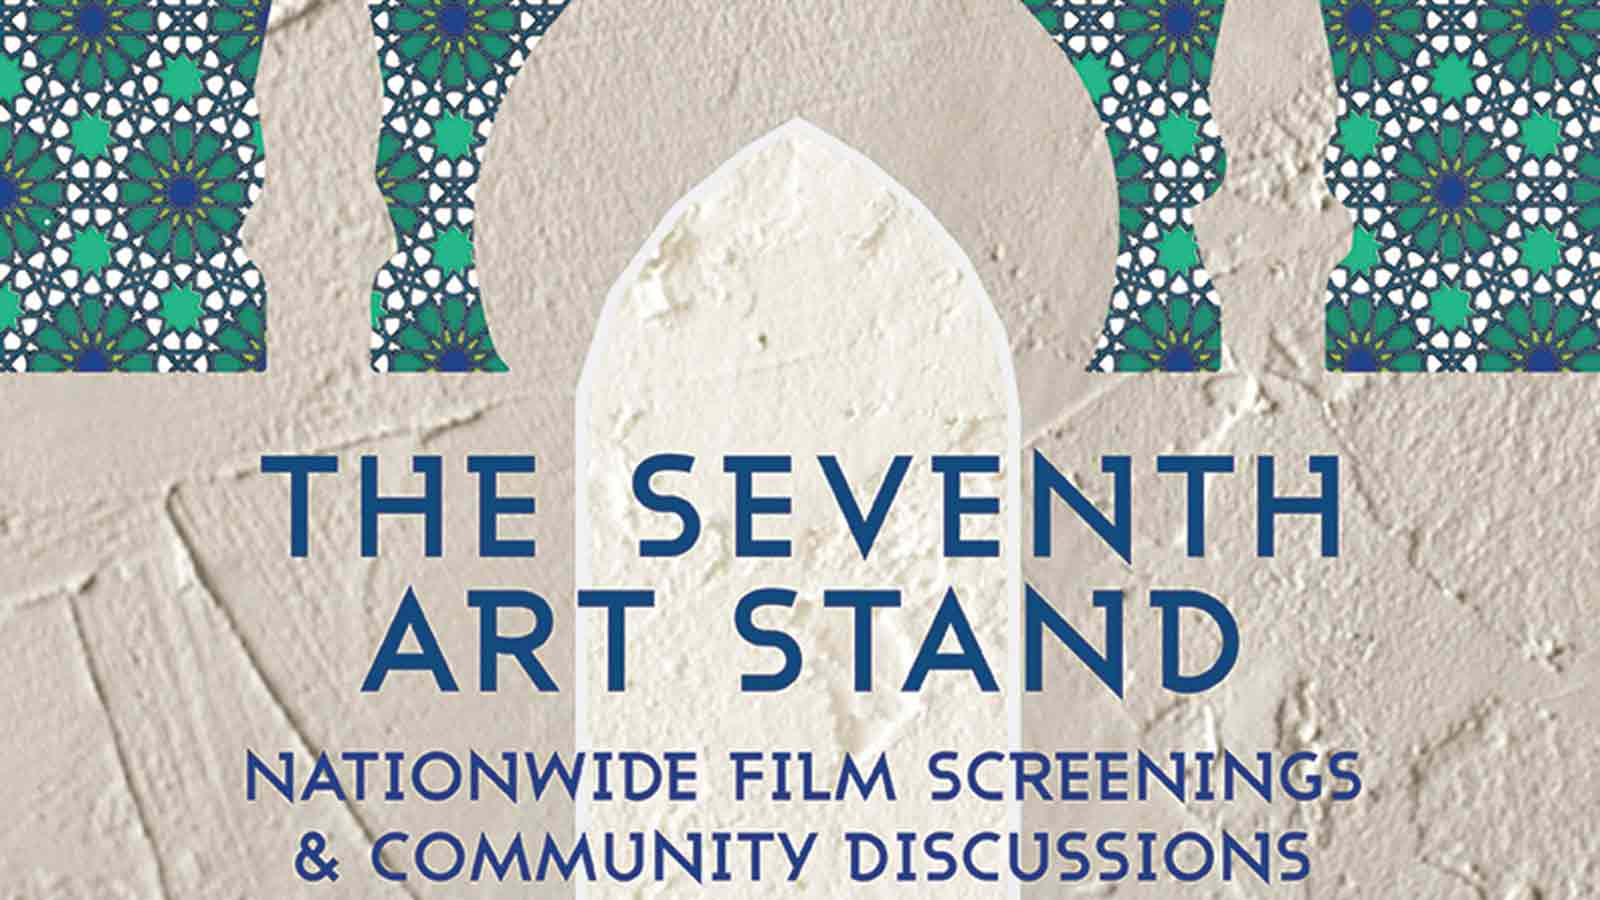 The Seventh Art Stand